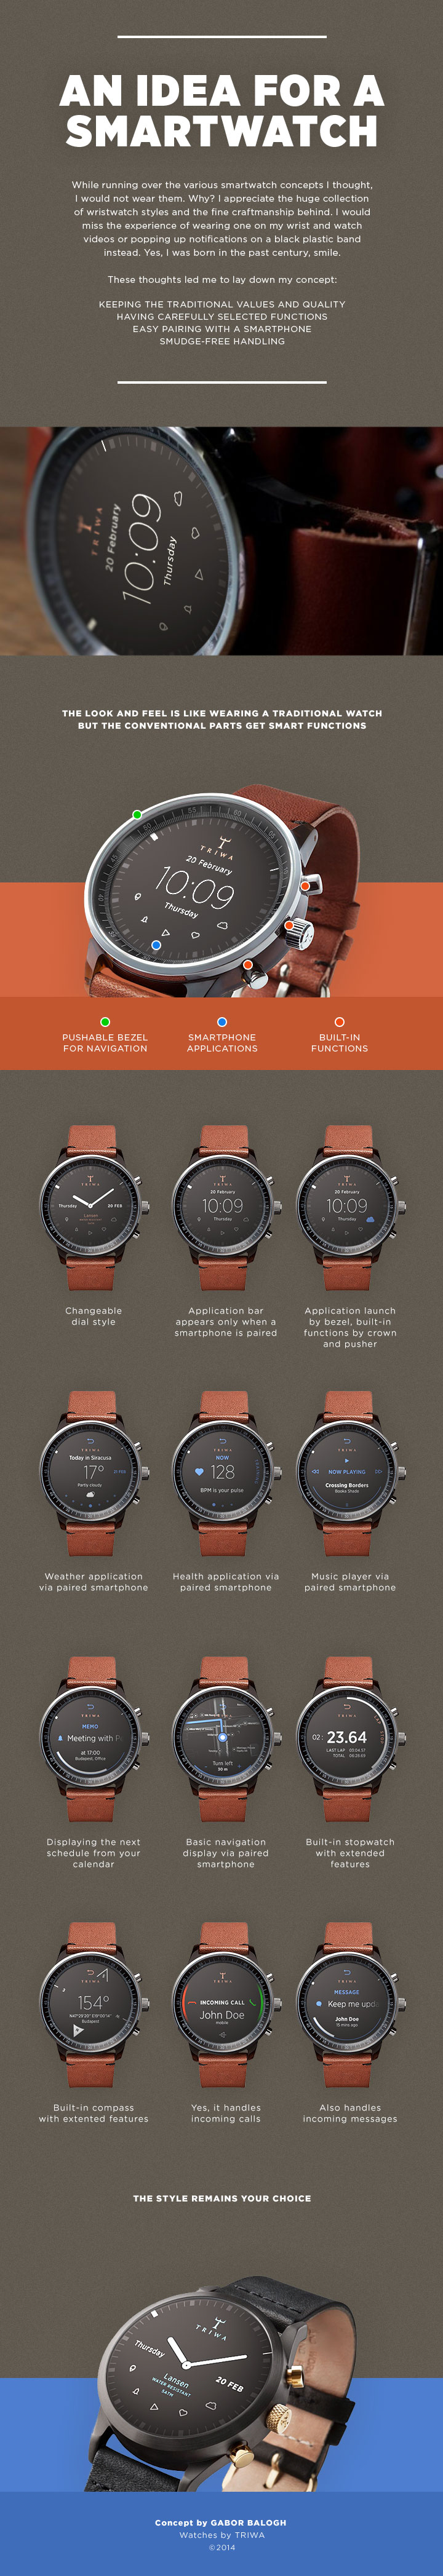 Smartwatch-Concept-on-Behance